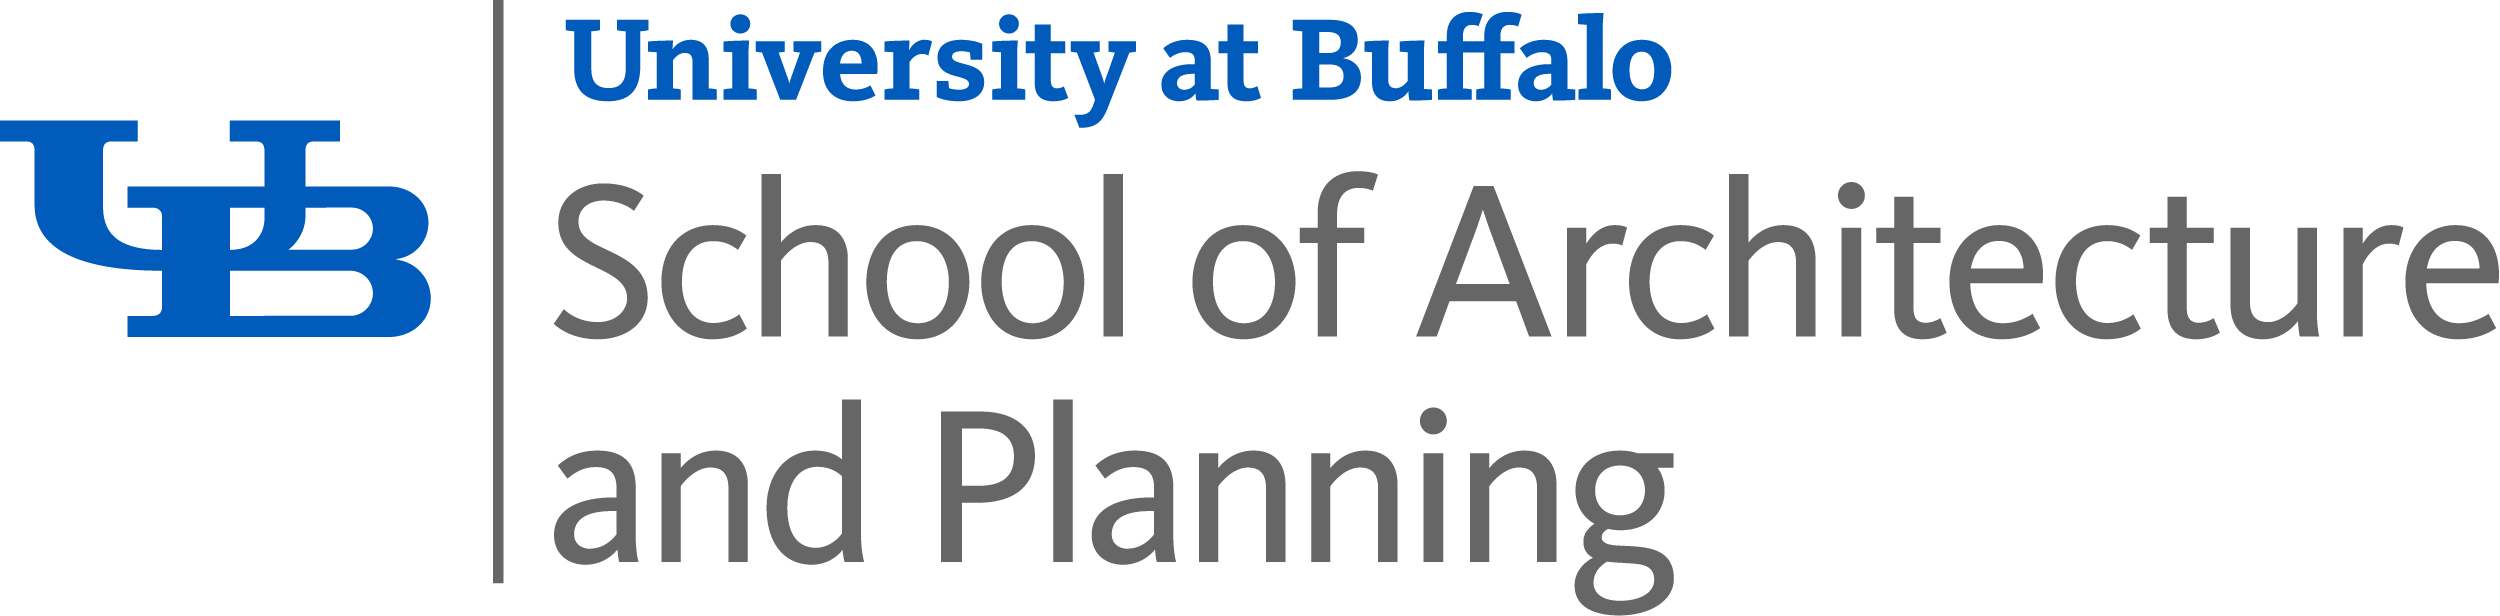 Buffalo School of Architecture and Planning